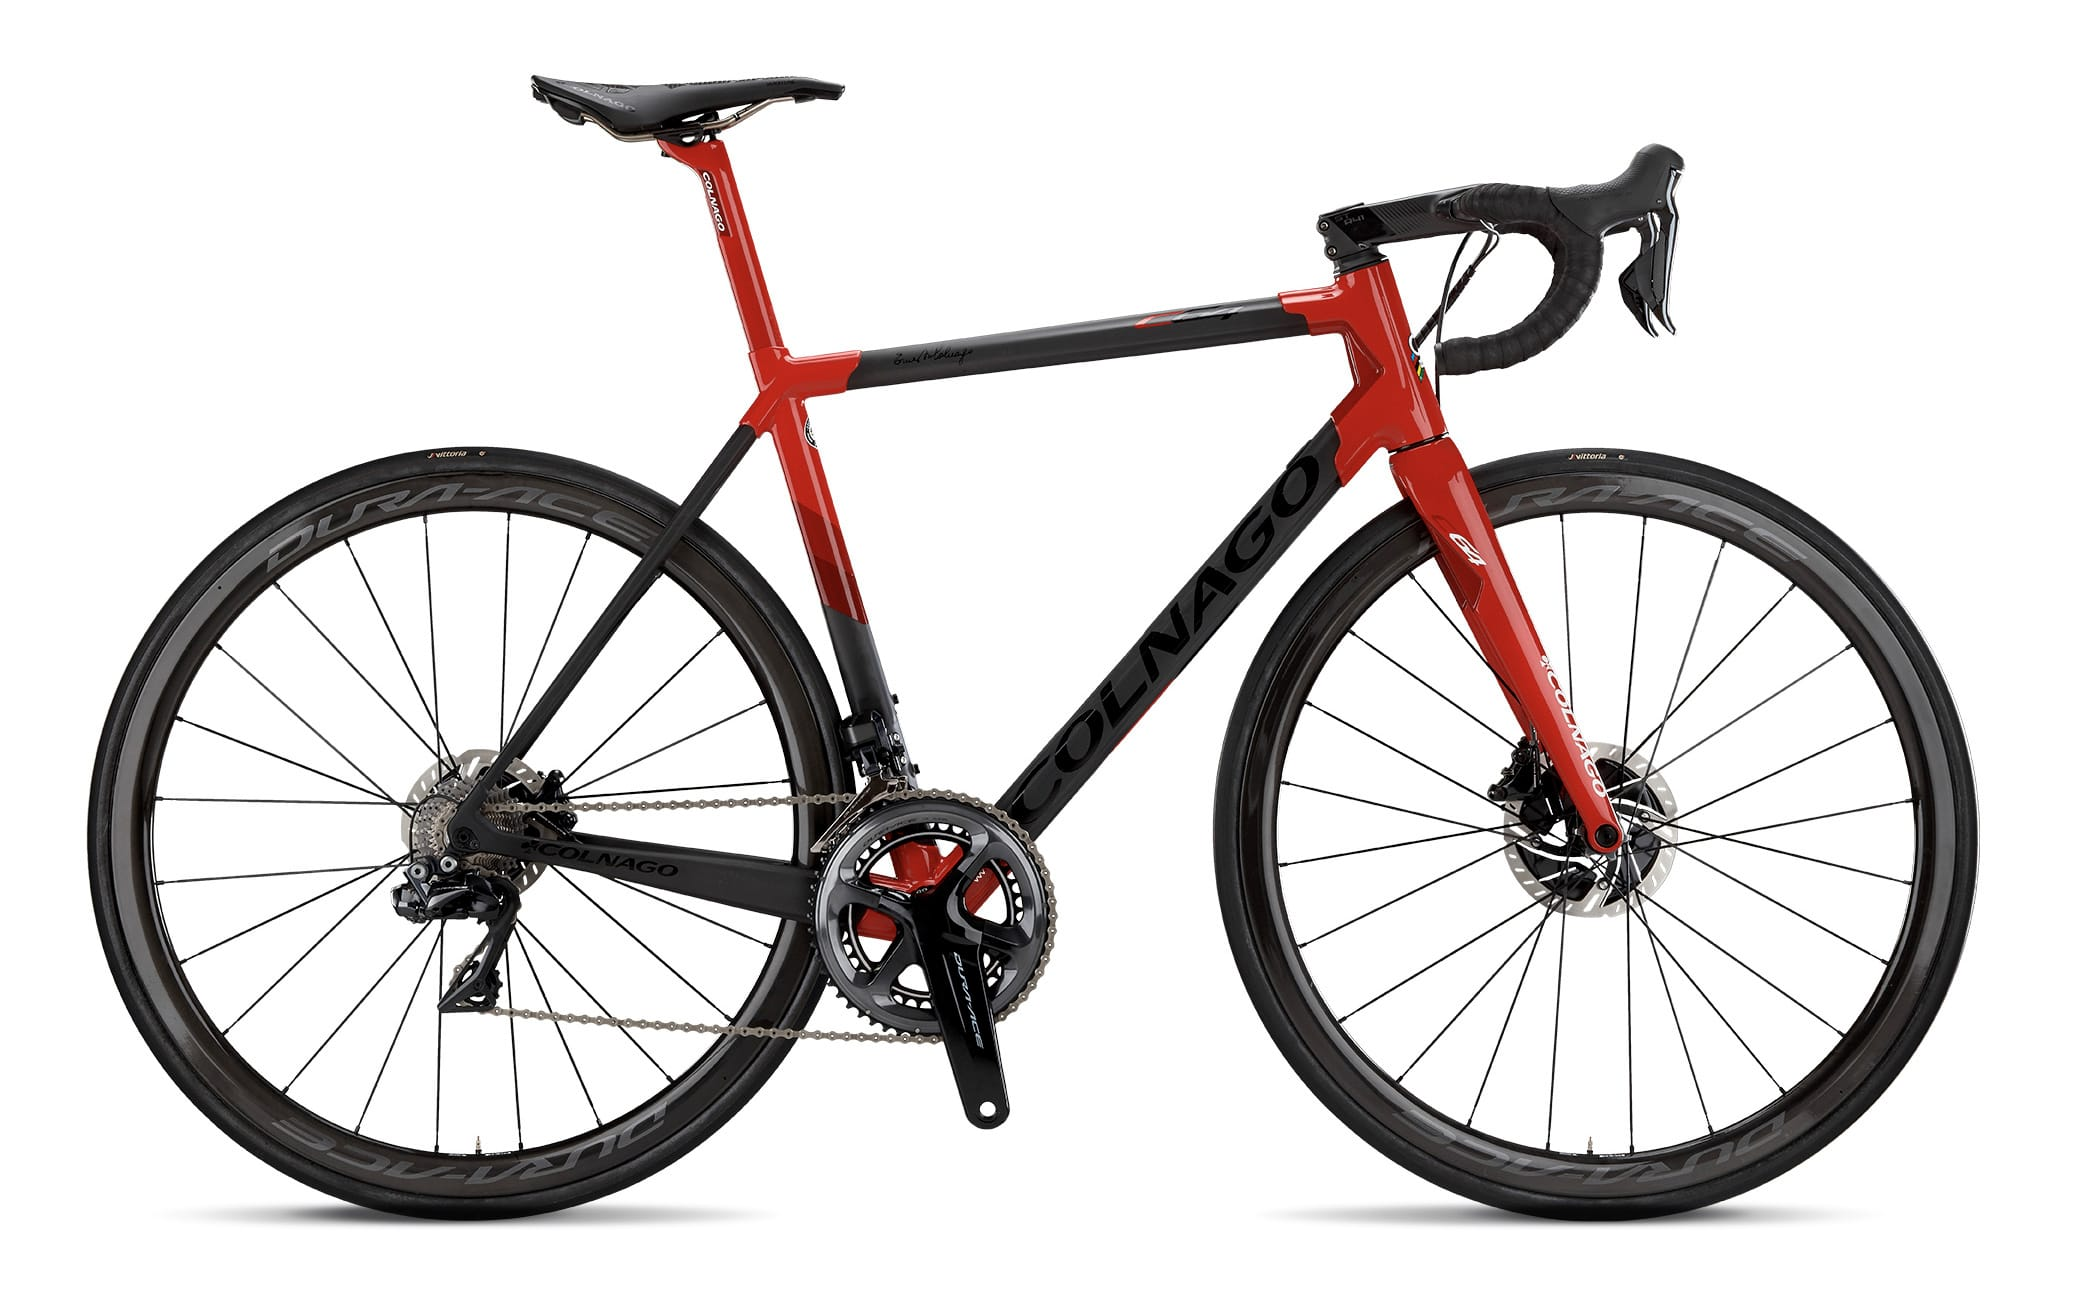 2018 Colnago C64 Disc Frameset and Fork PJRD Black/Red